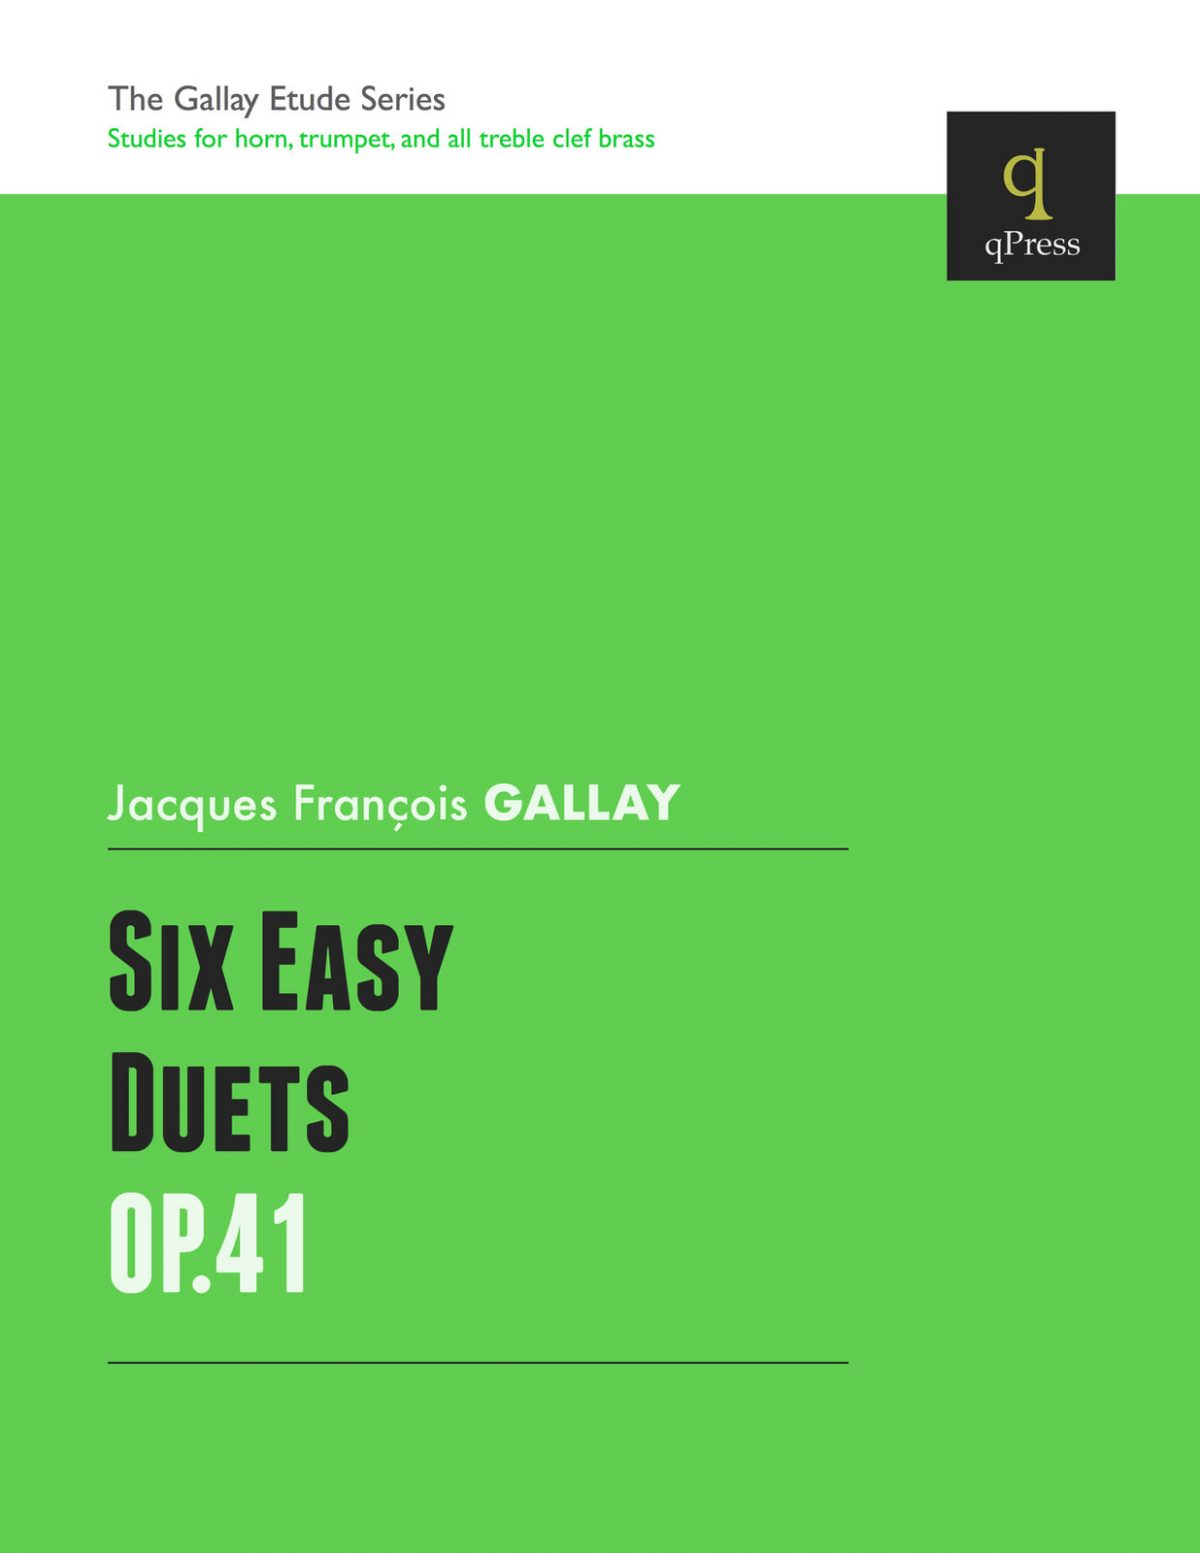 Gallay, 6 Easy Duets for Trumpet-p01